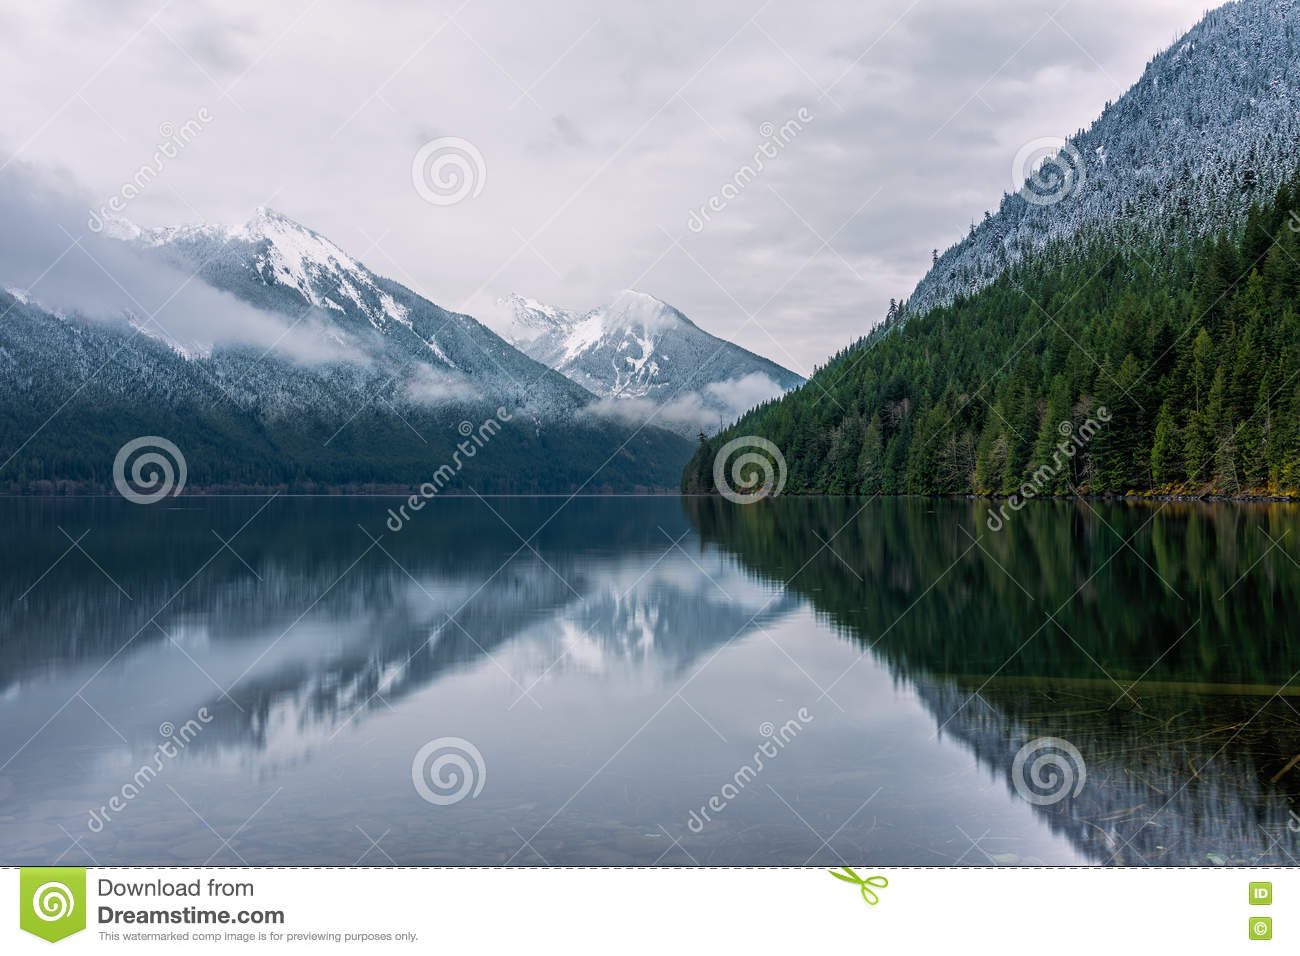 The Chilliwack Lake in the Chilliwack Lake Provincial Park